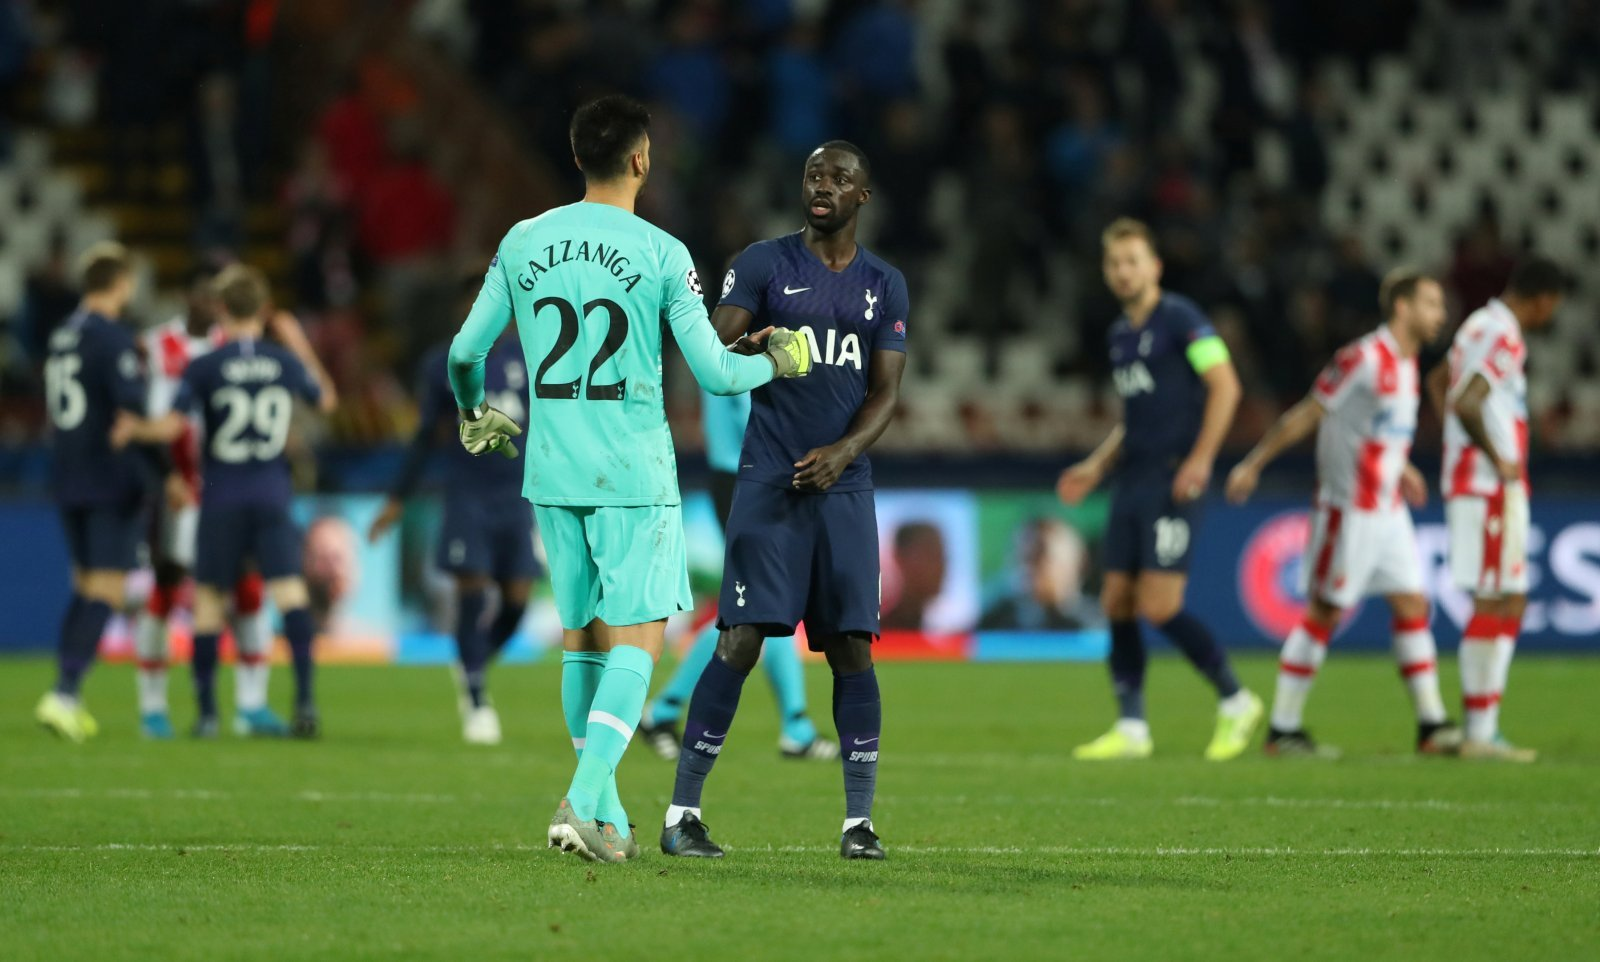 Tottenham: Lots of fans were happy with Paulo Gazzaniga's clean sheet performance in the Champions League